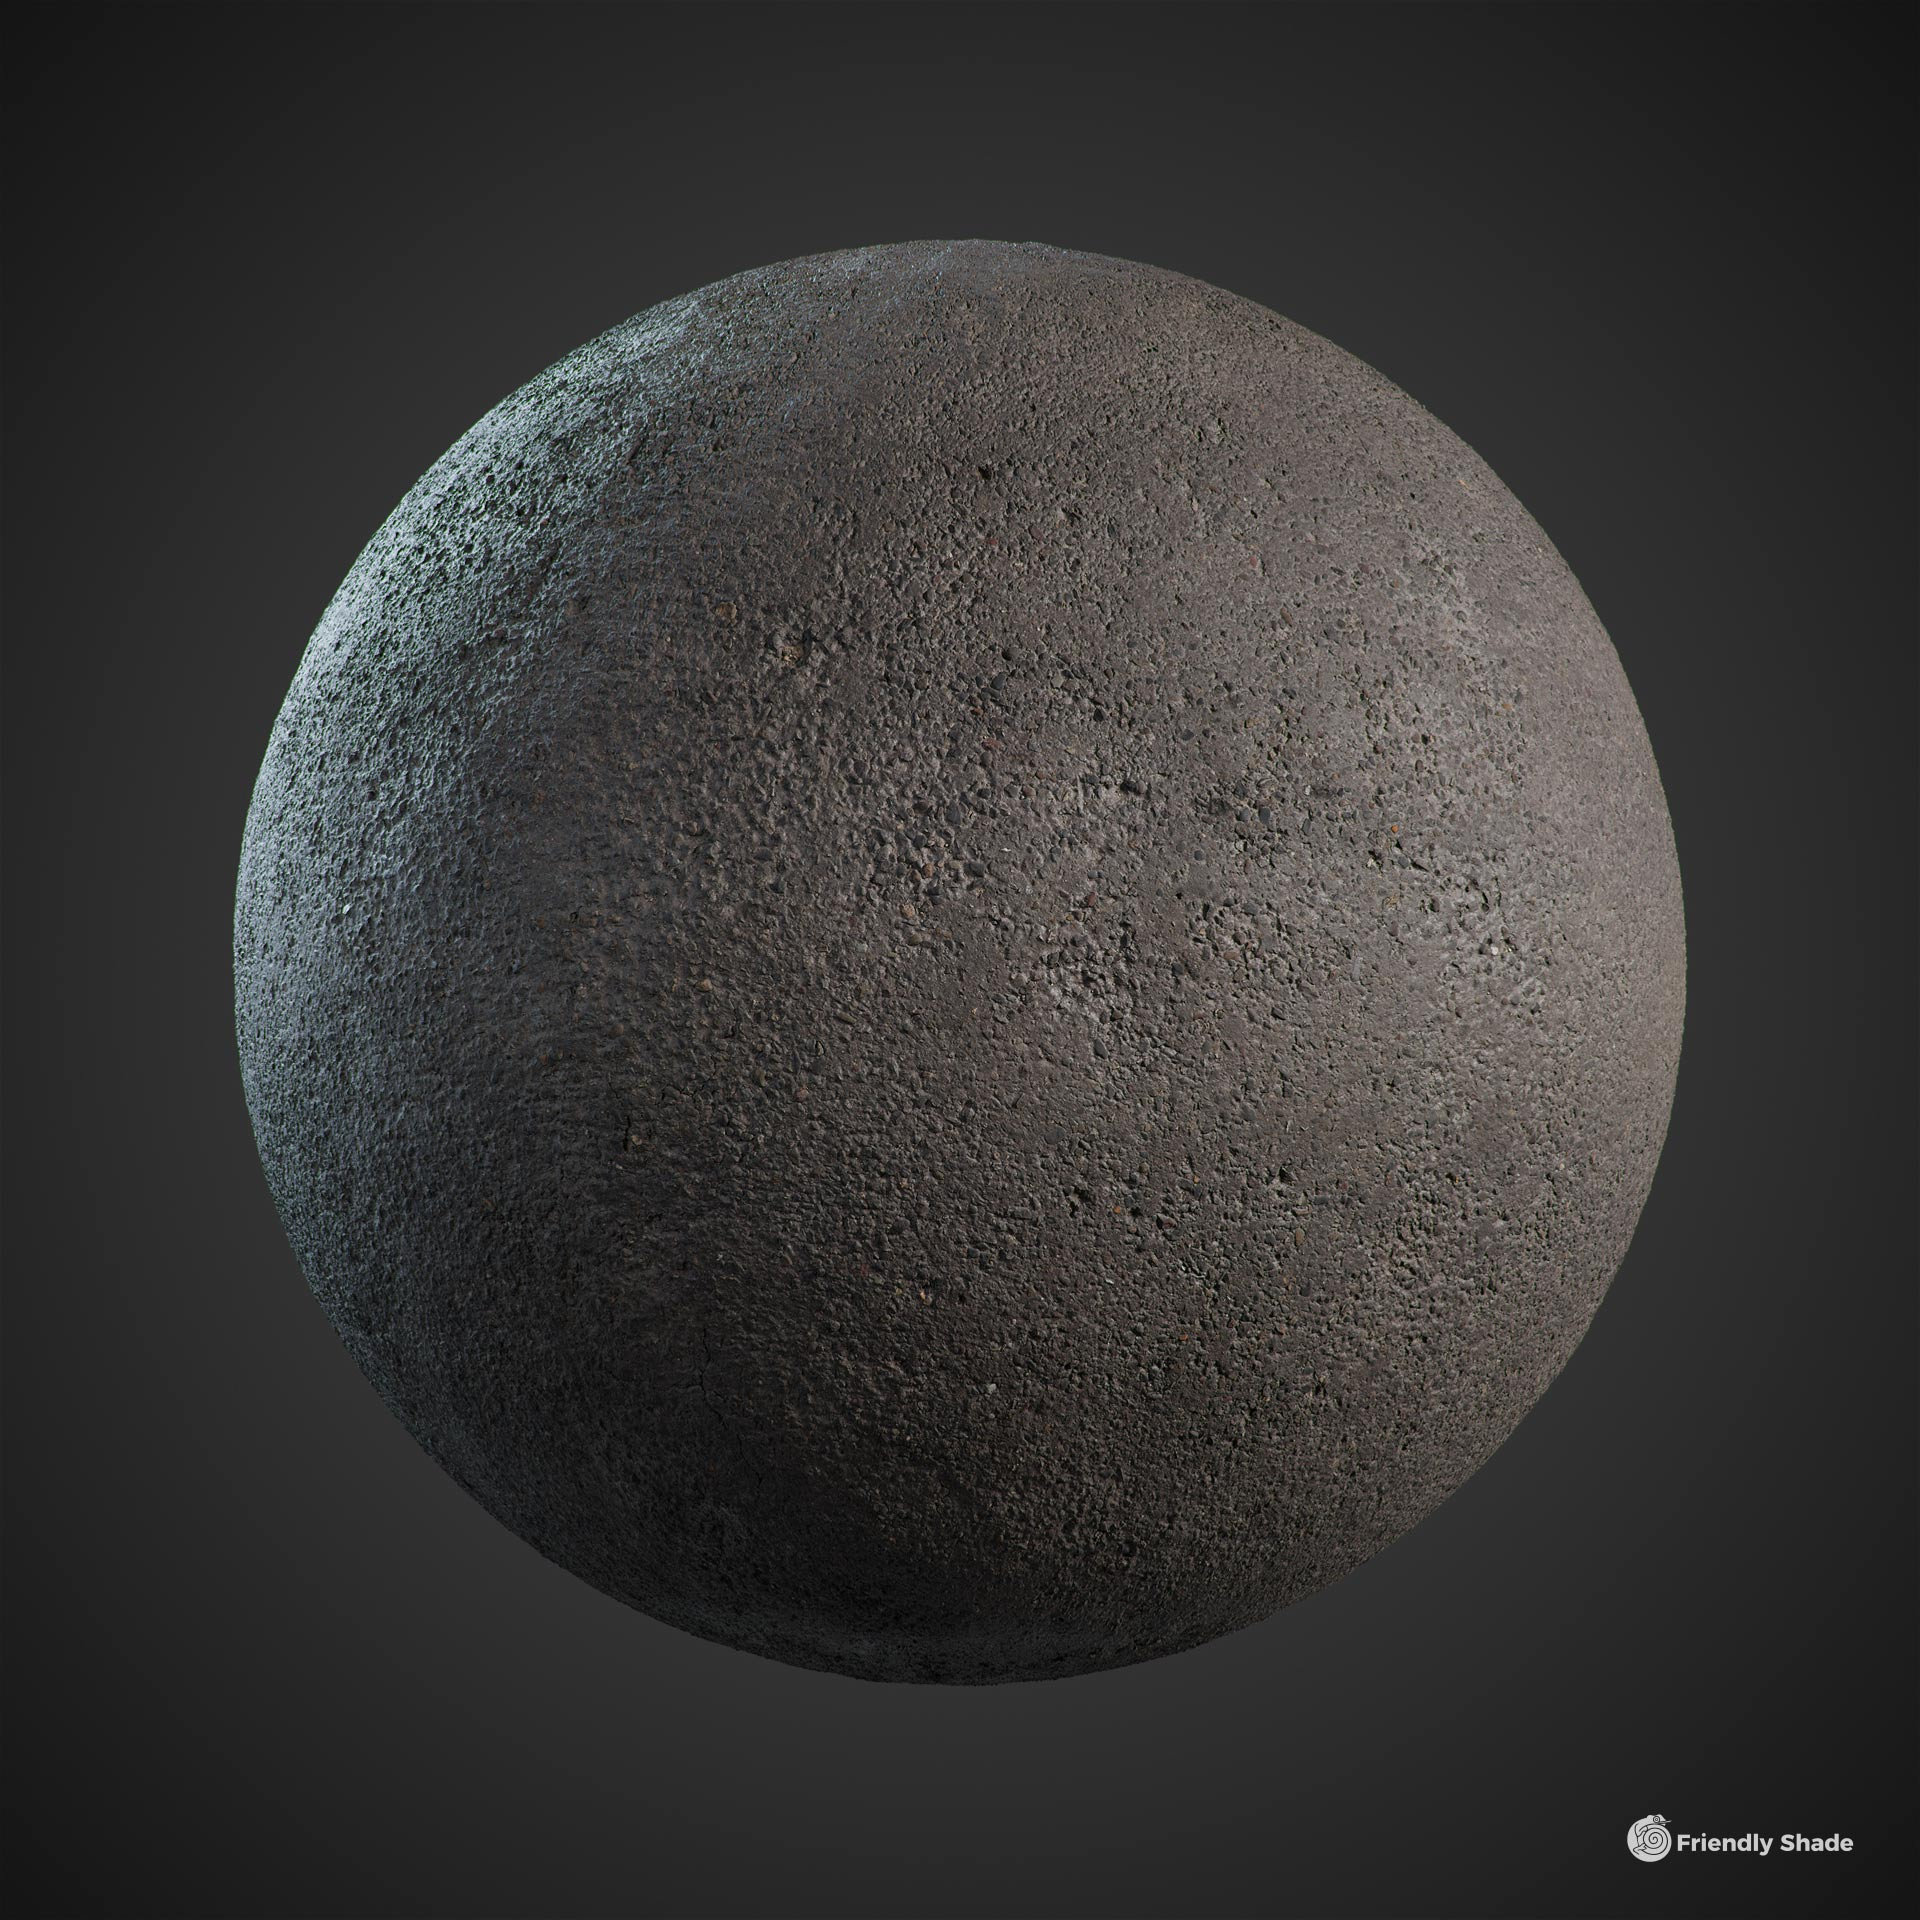 The image shows a sphere with the road asphalt texture provided by Friendly Shade